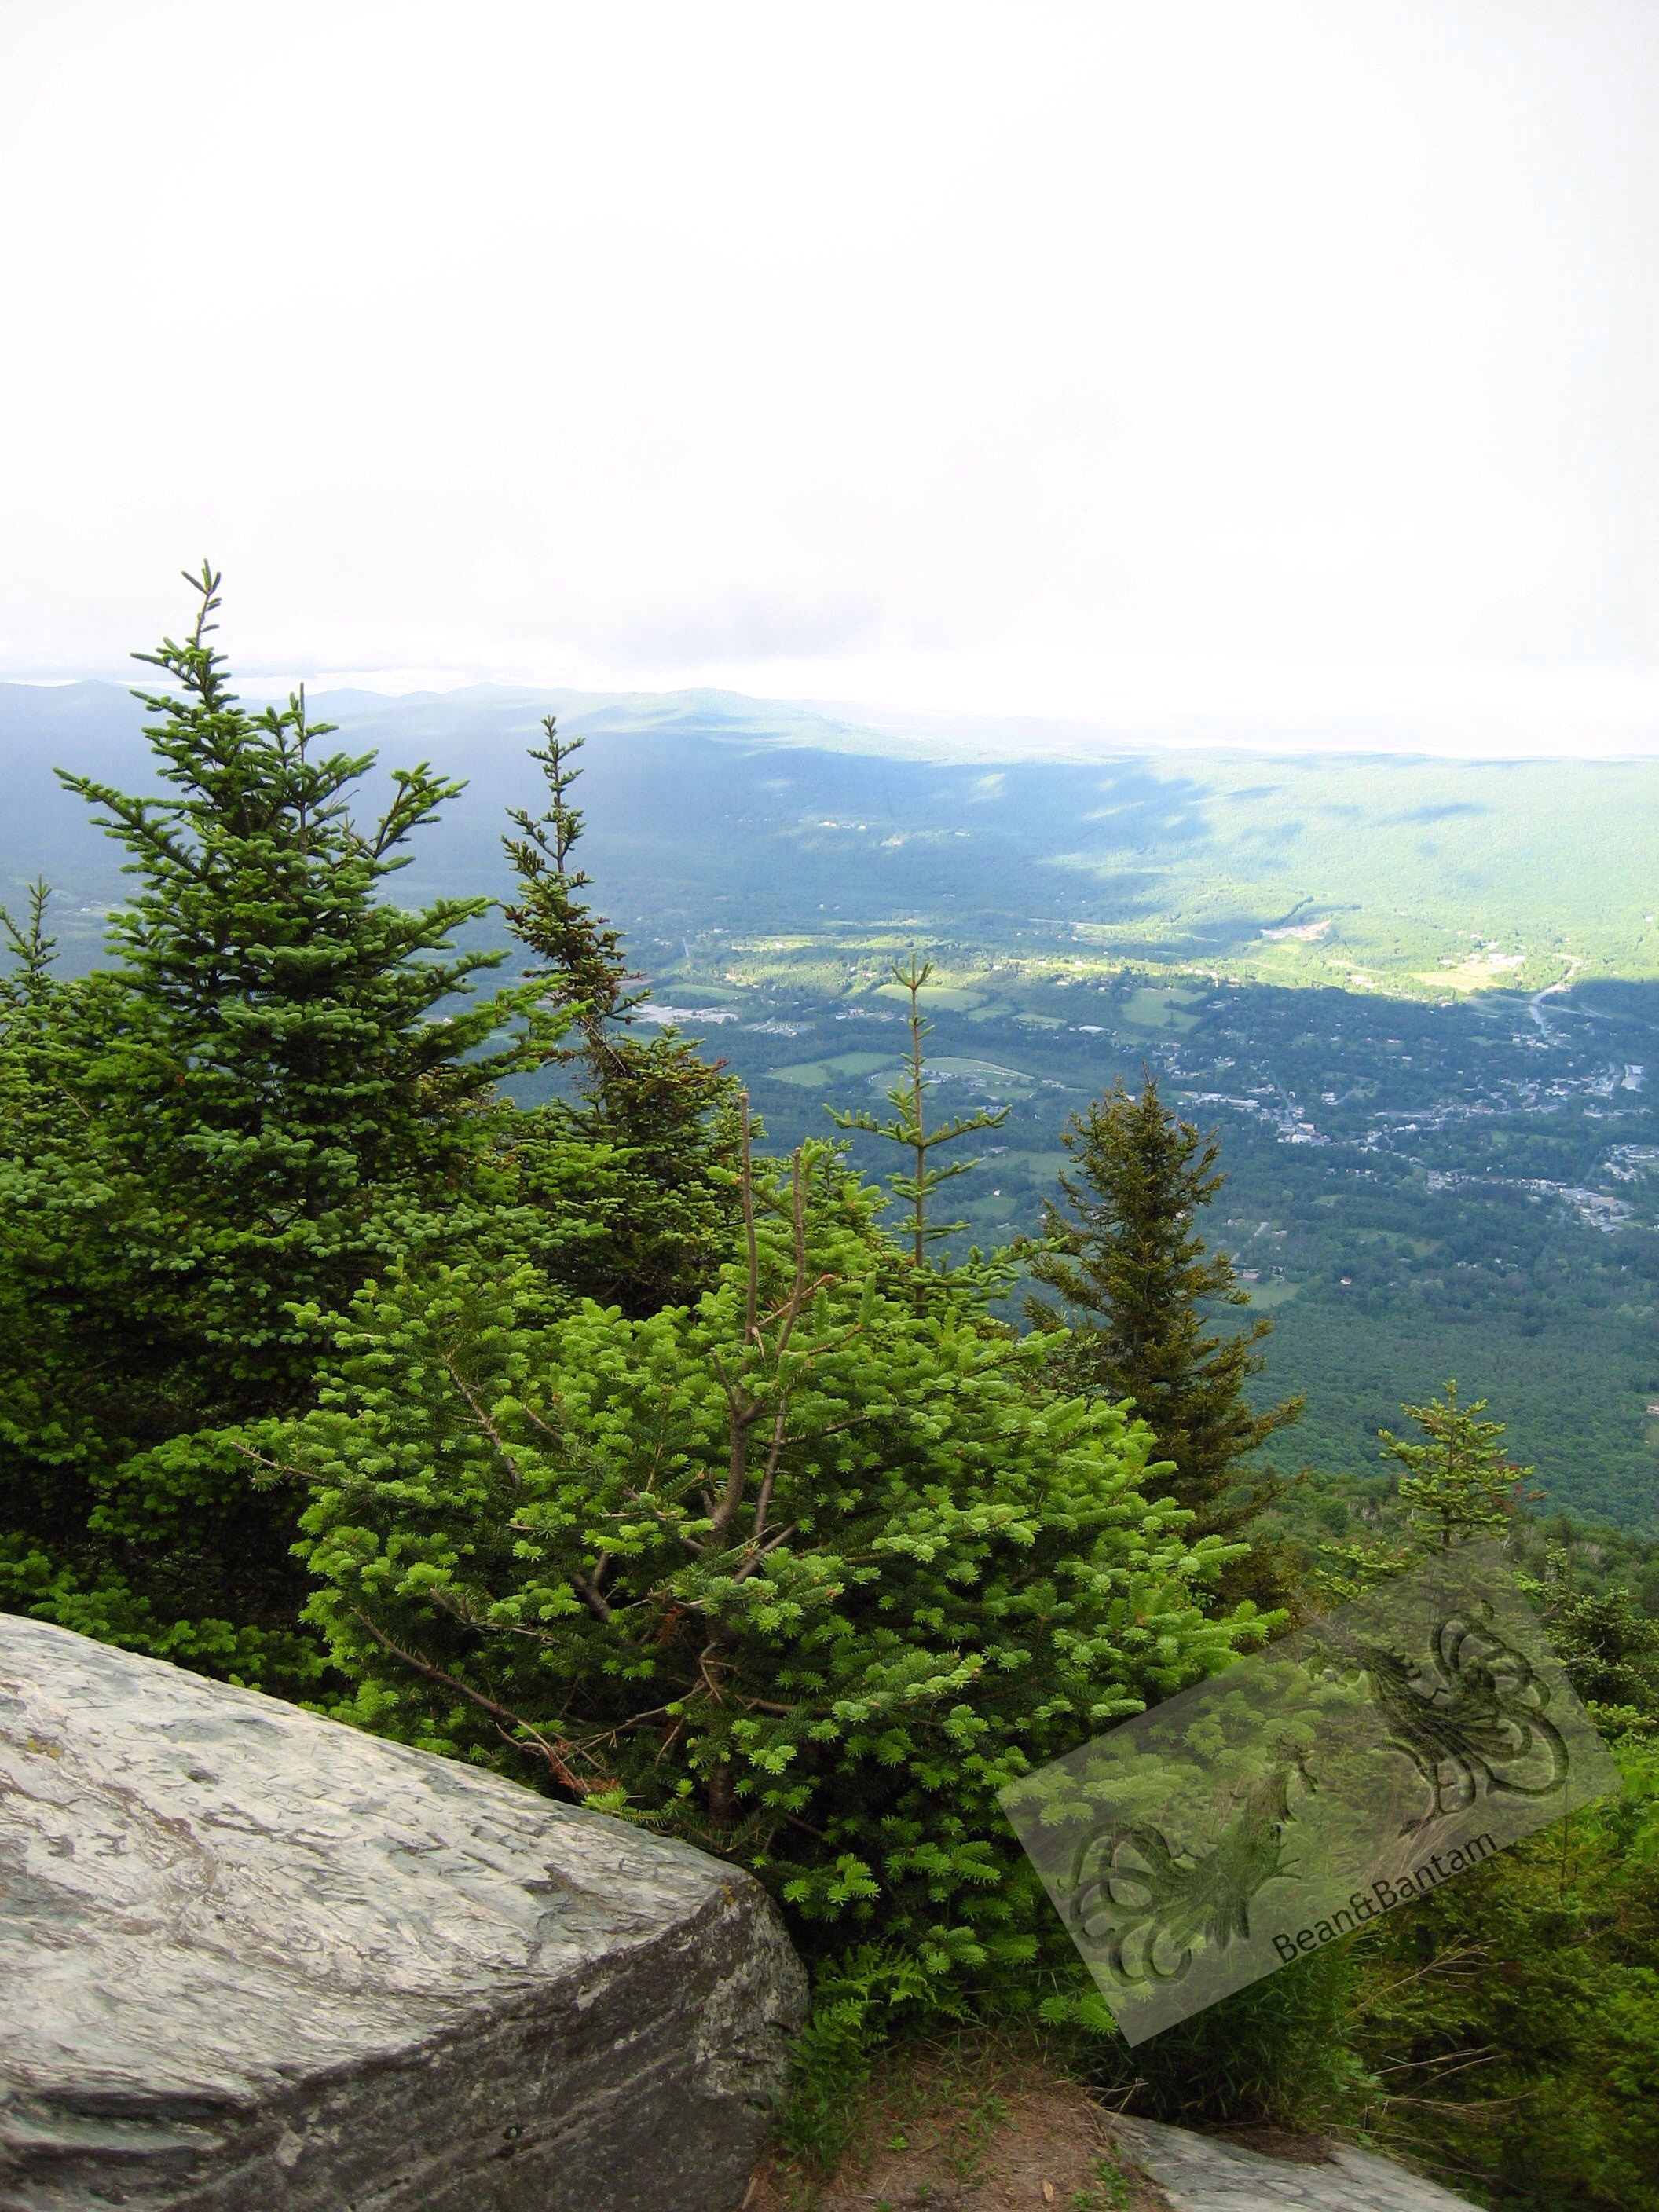 Lookout Rock, Mount Equinox